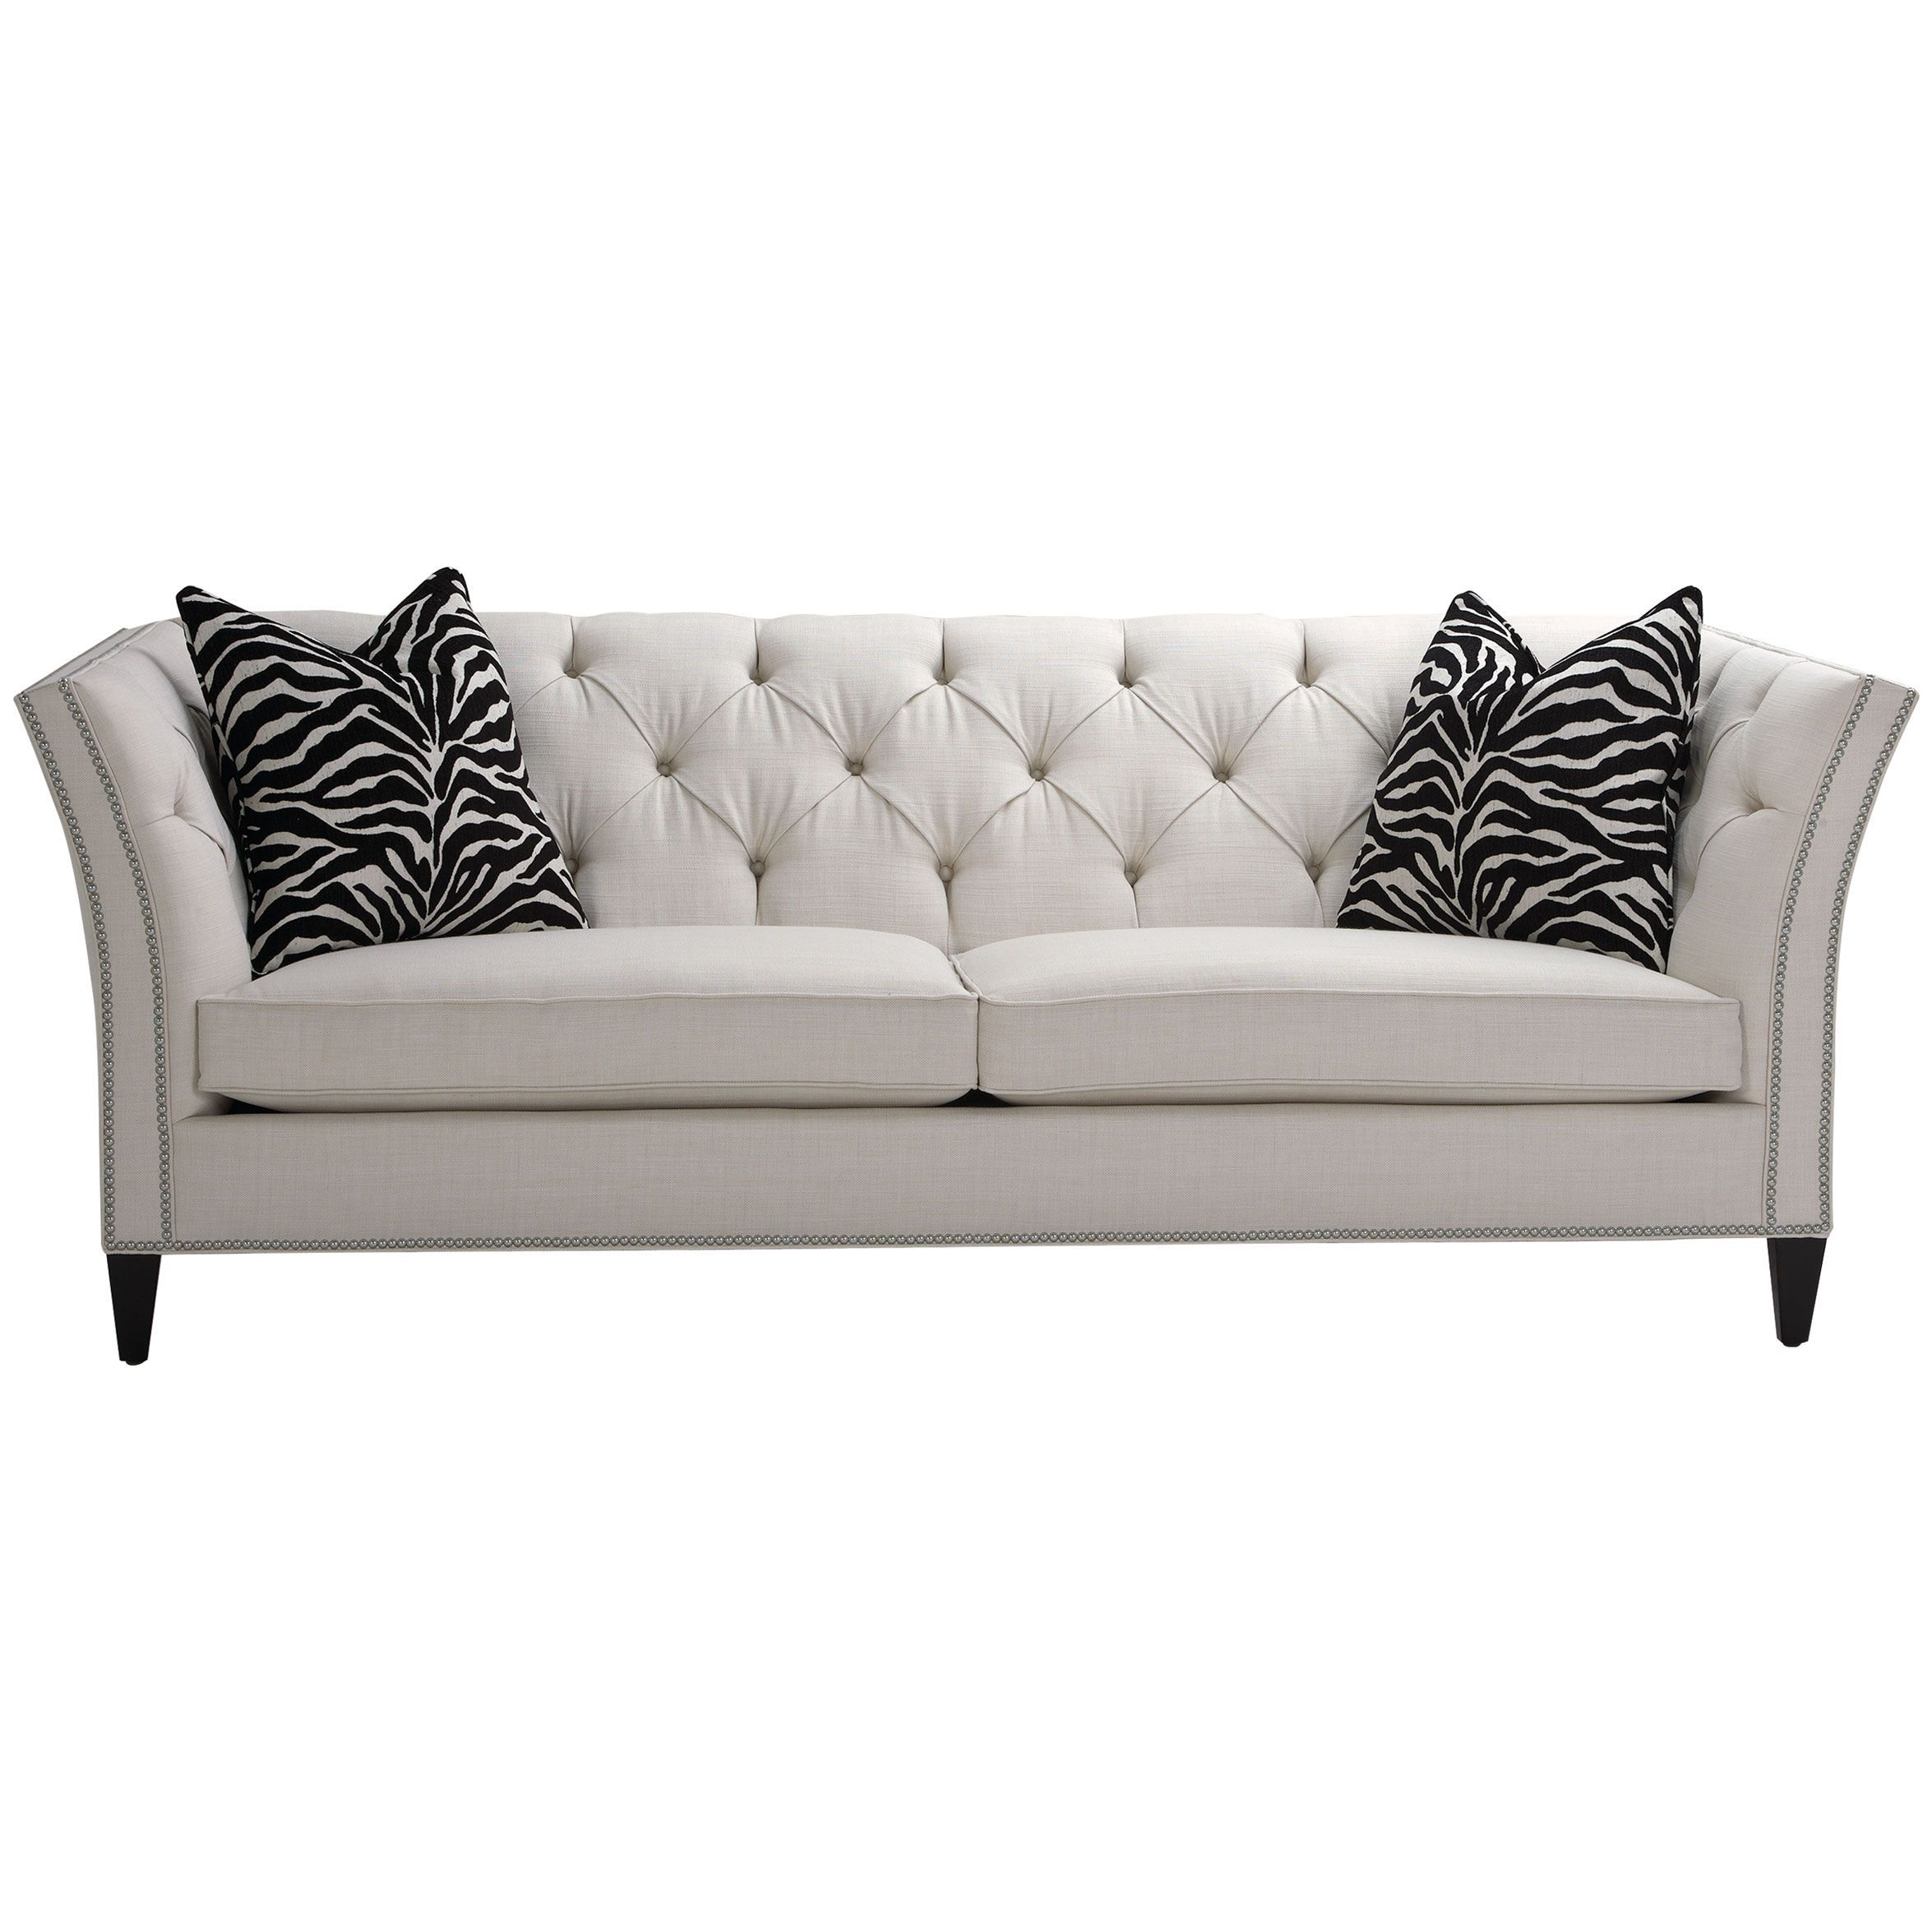 Sofa Outlet Cheshire Pin By Shruti Chi On Furniture Sofa Furniture Ethan Allen